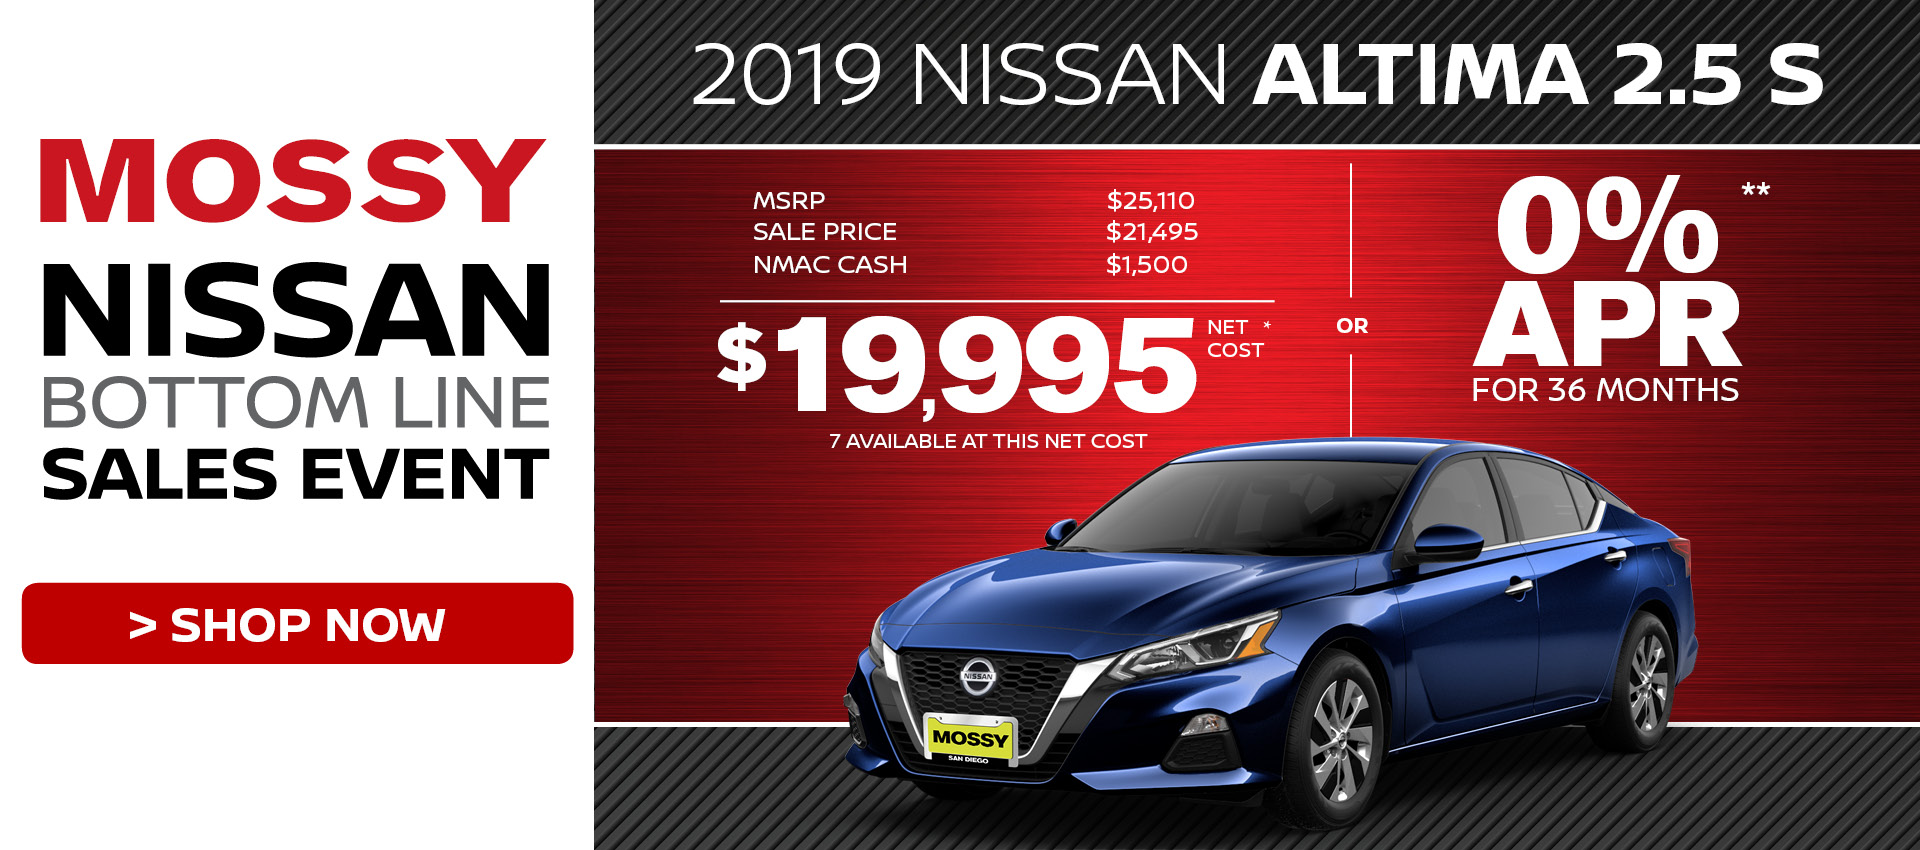 Mossy Nissan - Nissan Altima $19,995 Purchase HP